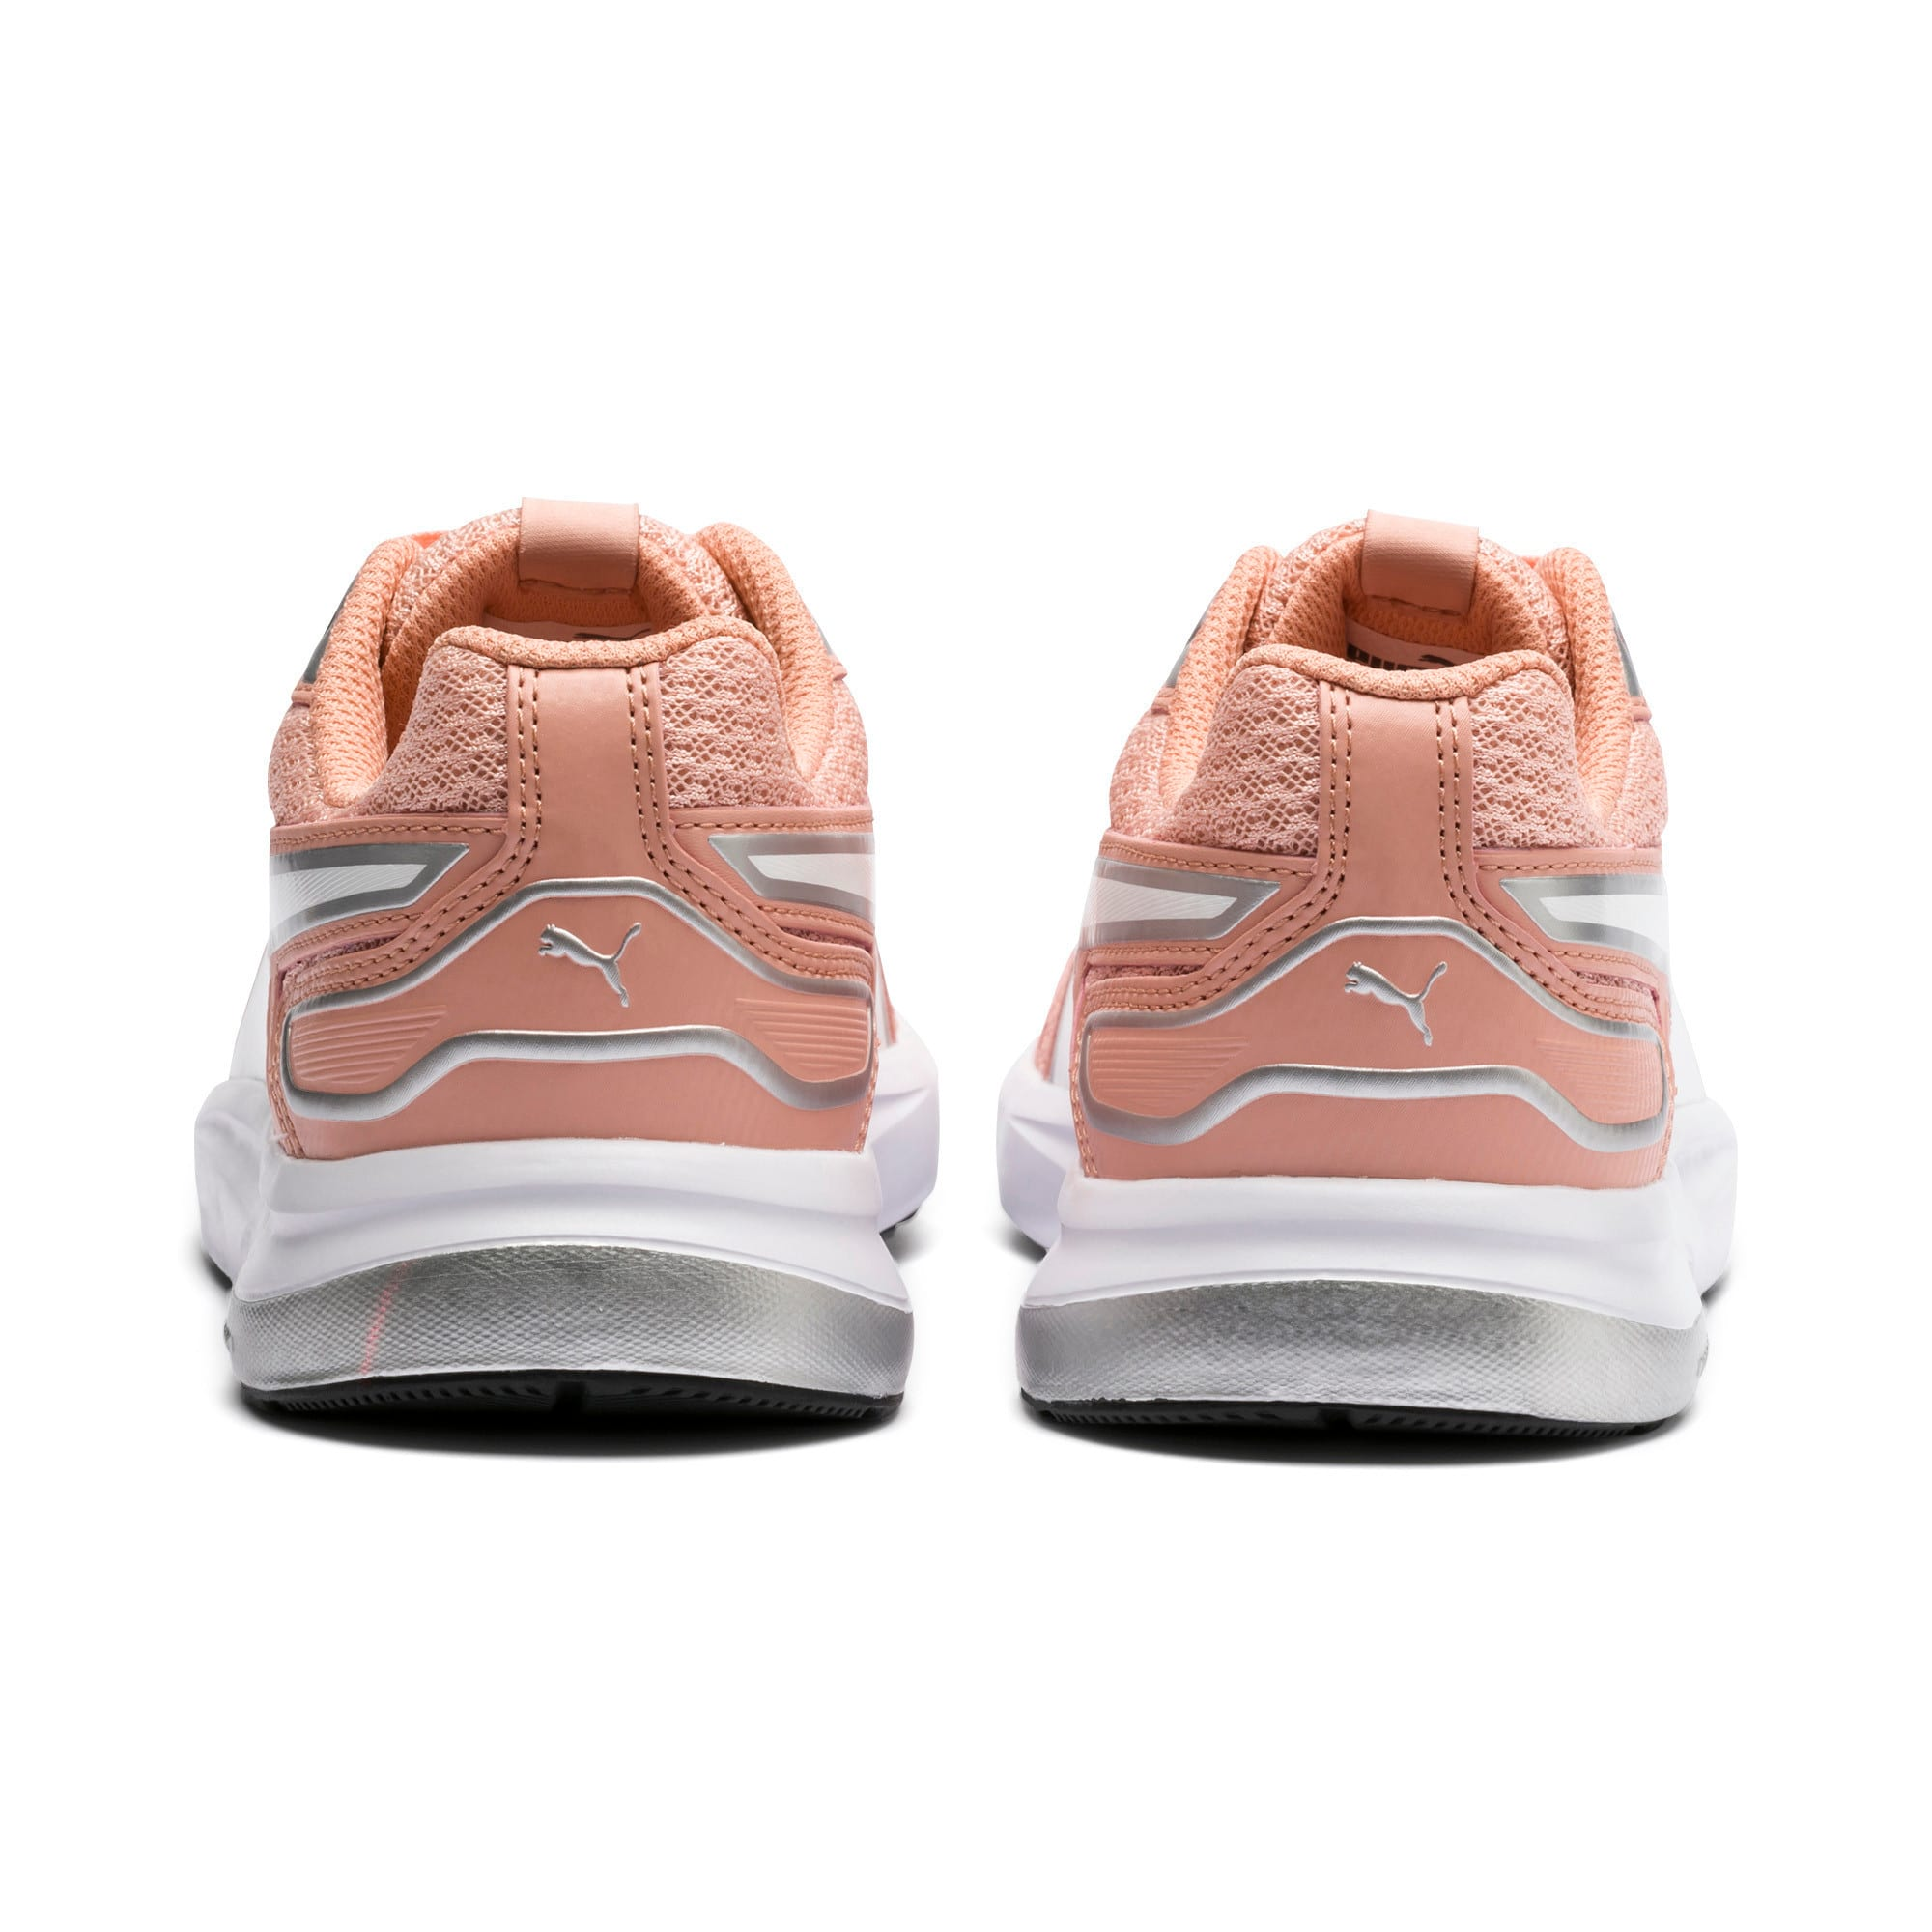 Thumbnail 3 of Escaper Tech Sneakers, Peach Bud-Silver-Puma White, medium-IND